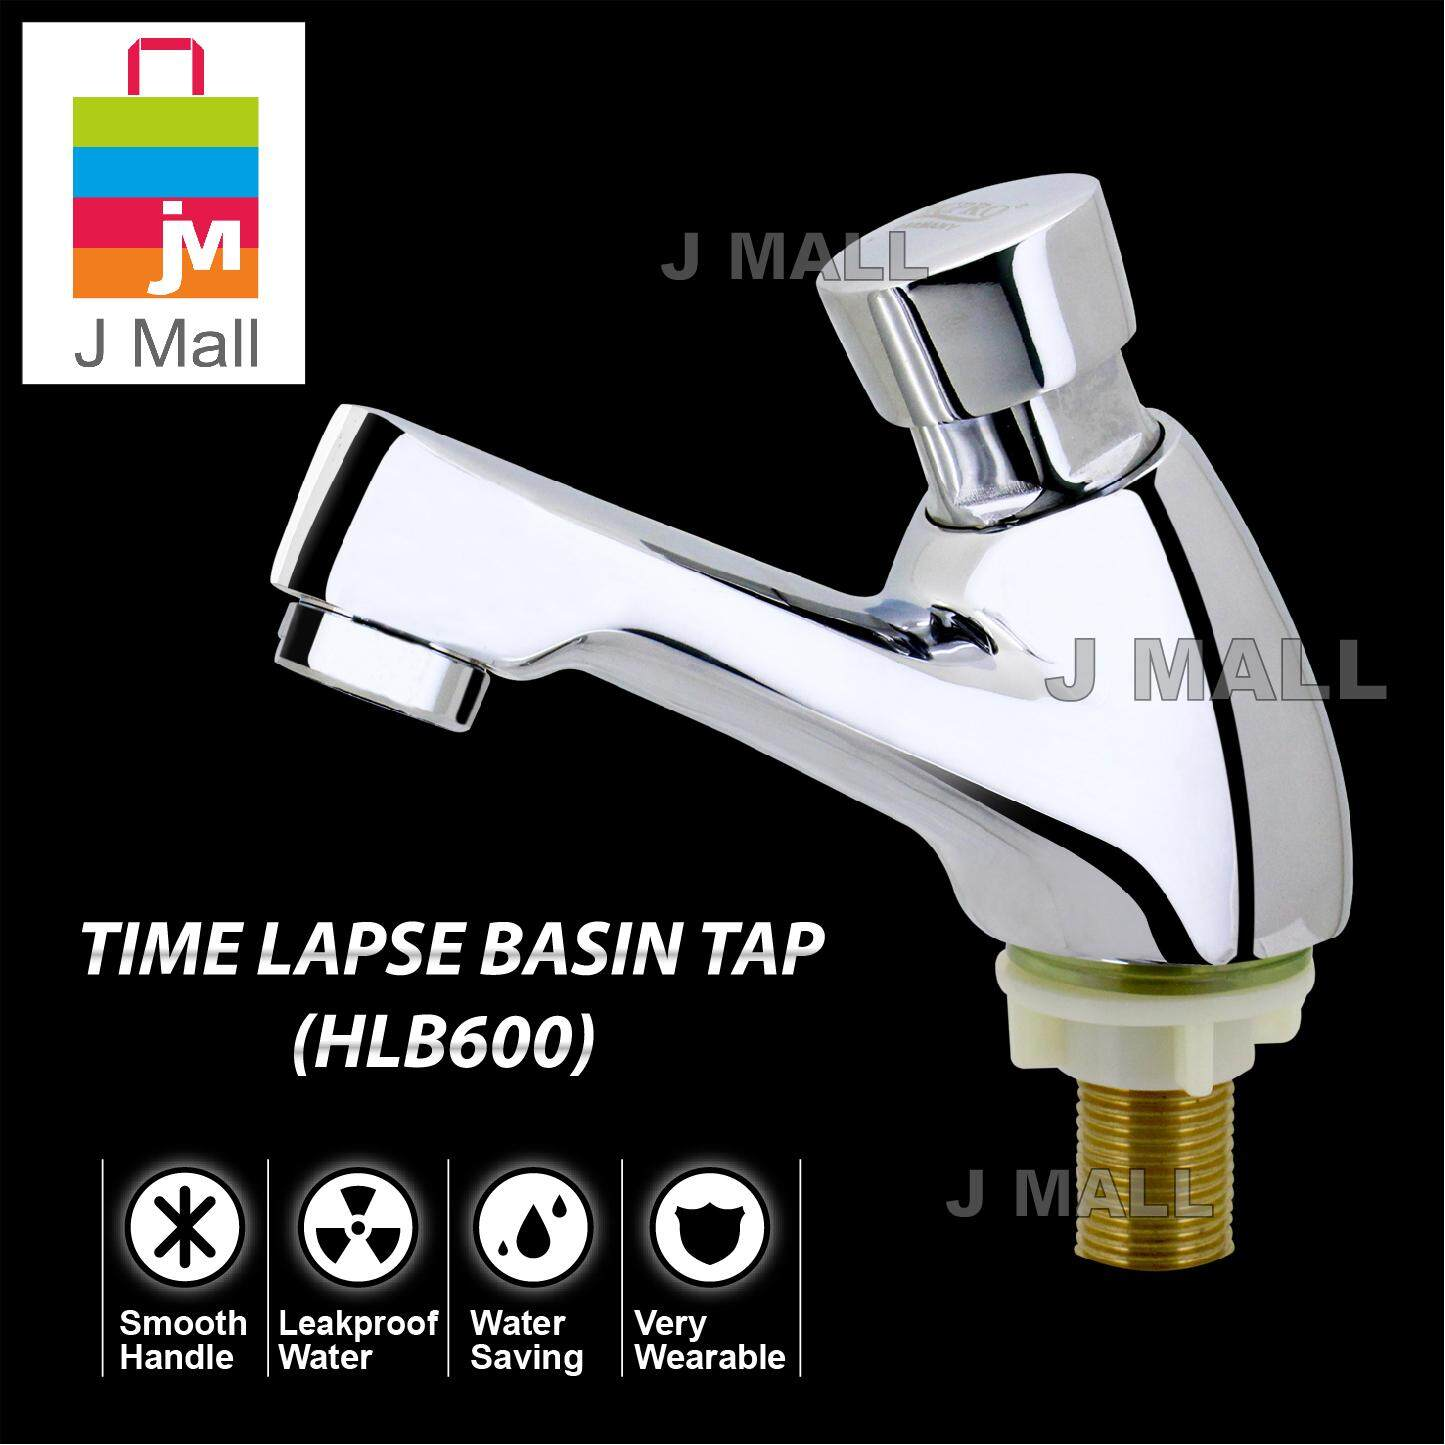 MCPRO Kitchen & Bathroom Basin Faucet TIME LAPSE BASIN TAP Press Self Auto Closing (HLB600)